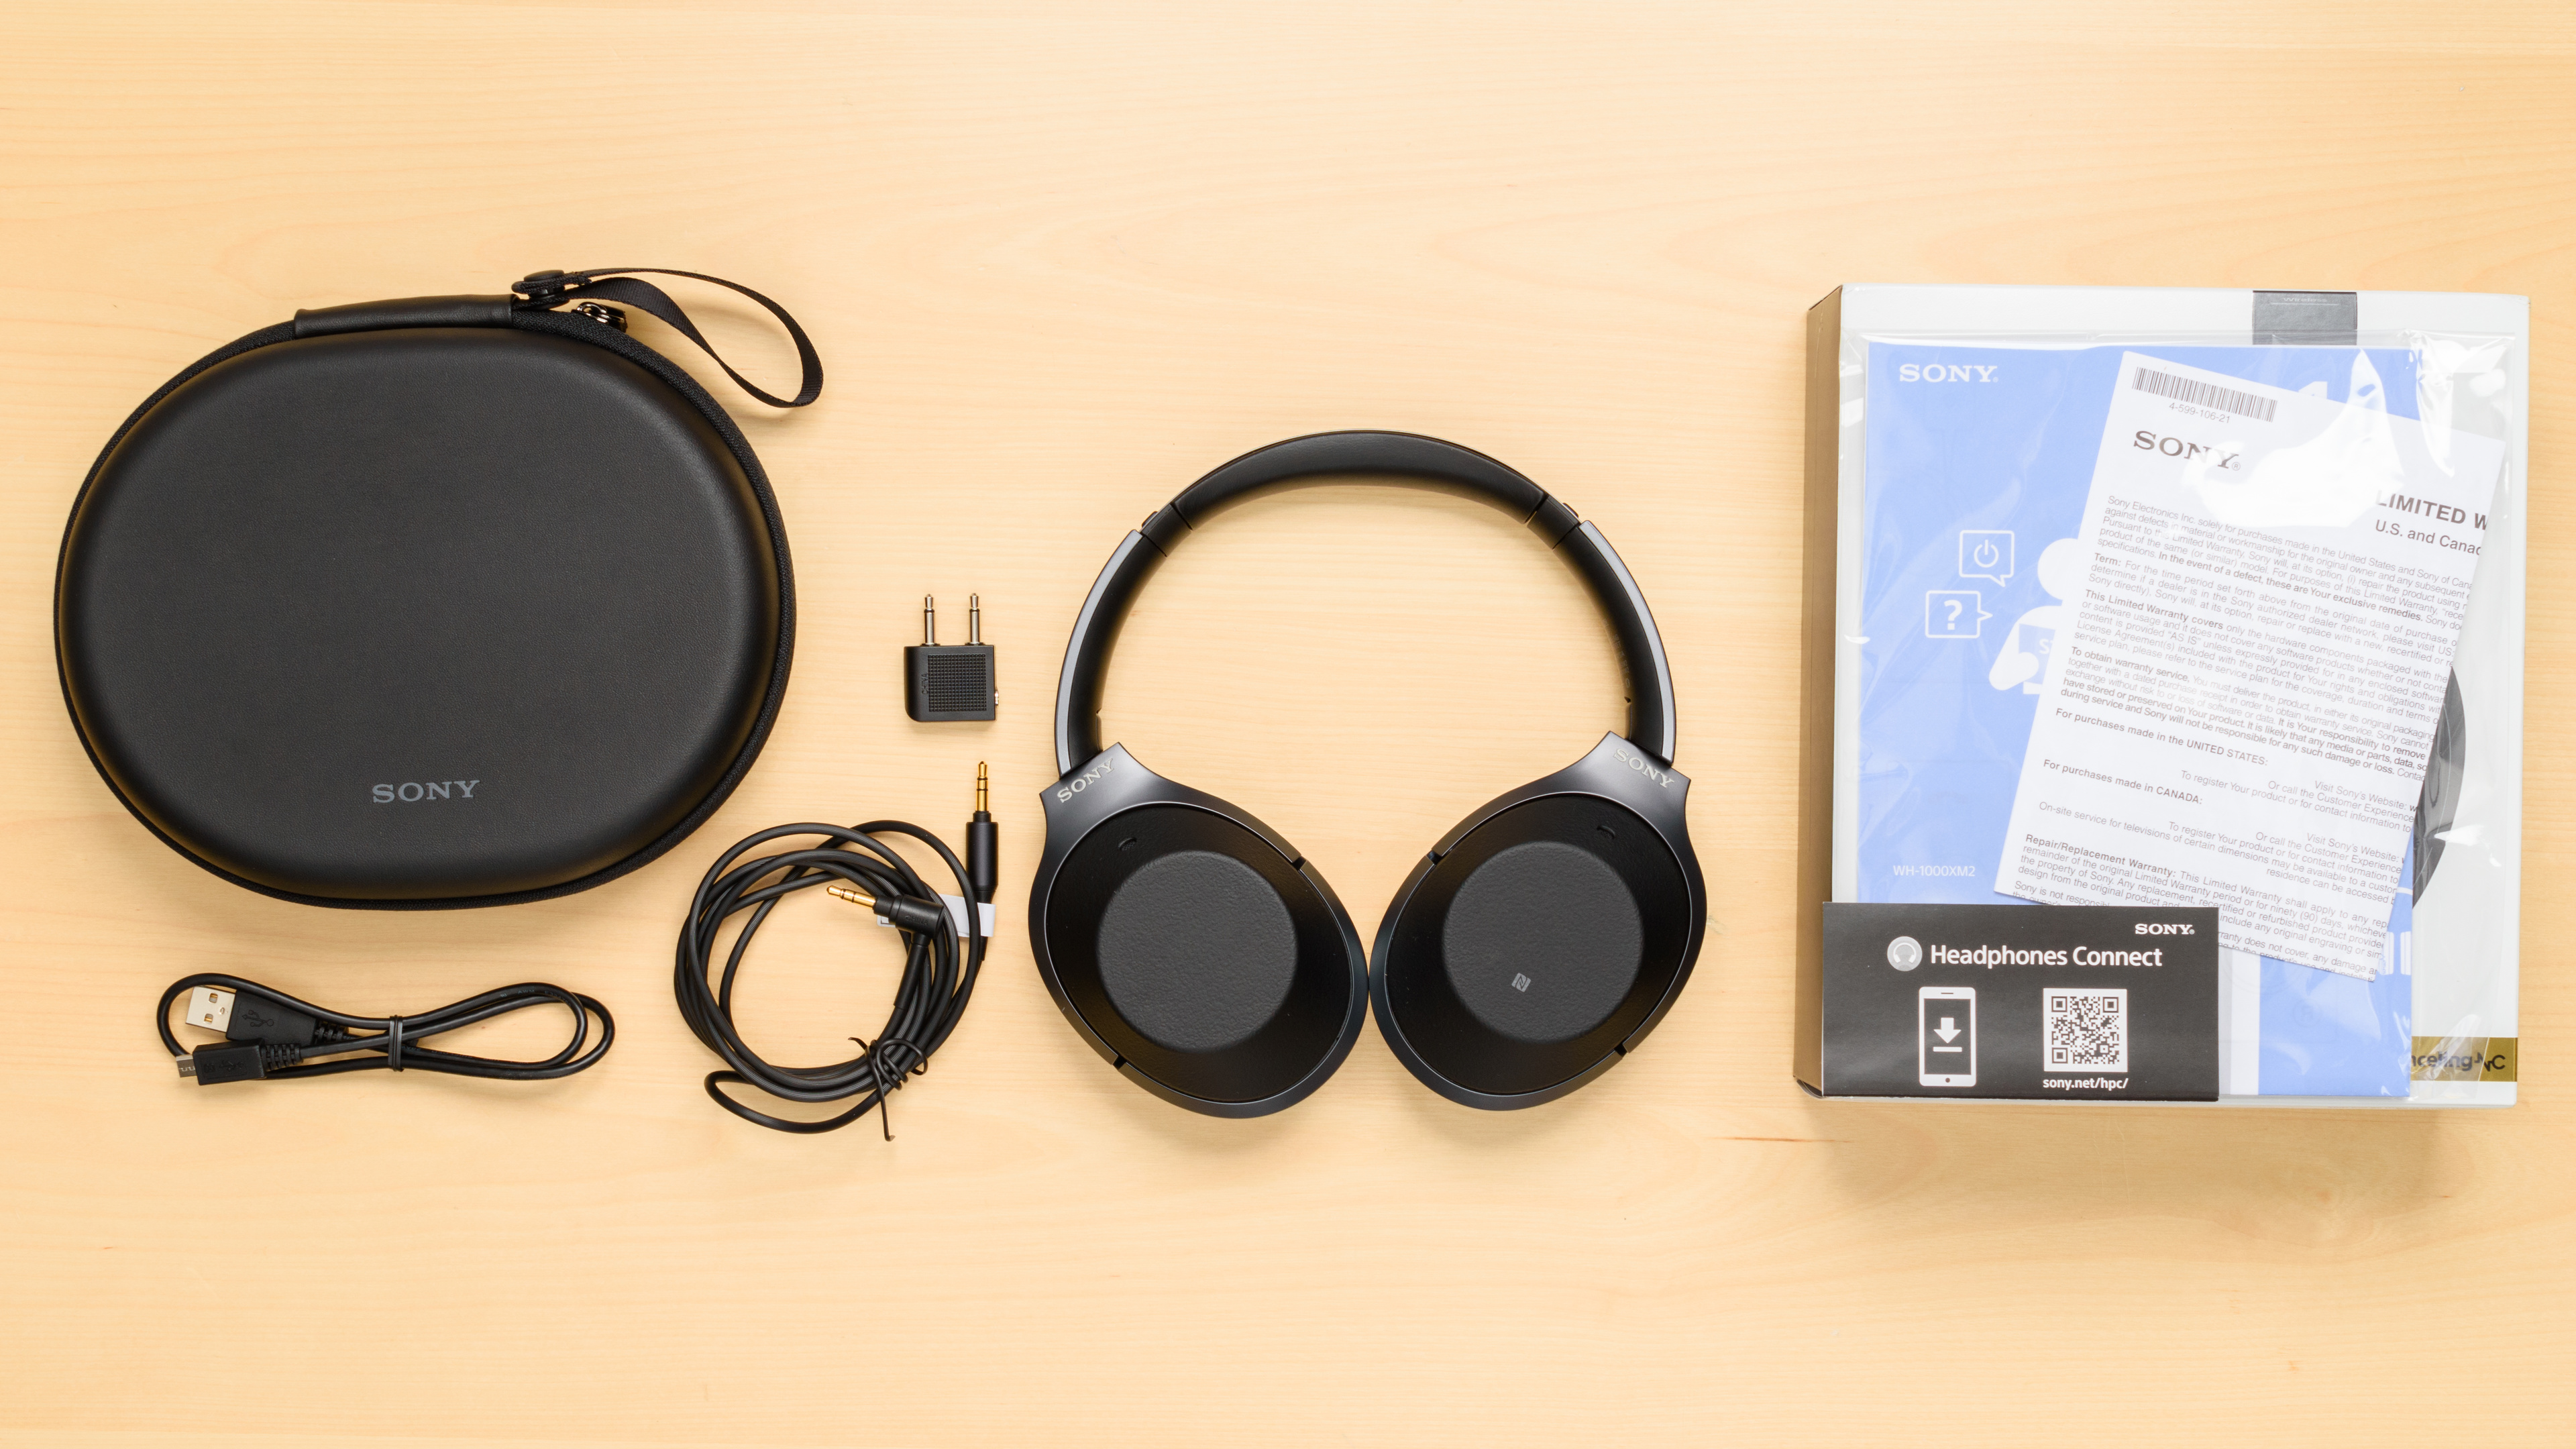 wh review While i have reviewed many headphones over the past couple years some of the cleanest and best noise cancelling headphones come from the house of bose with their qc35.